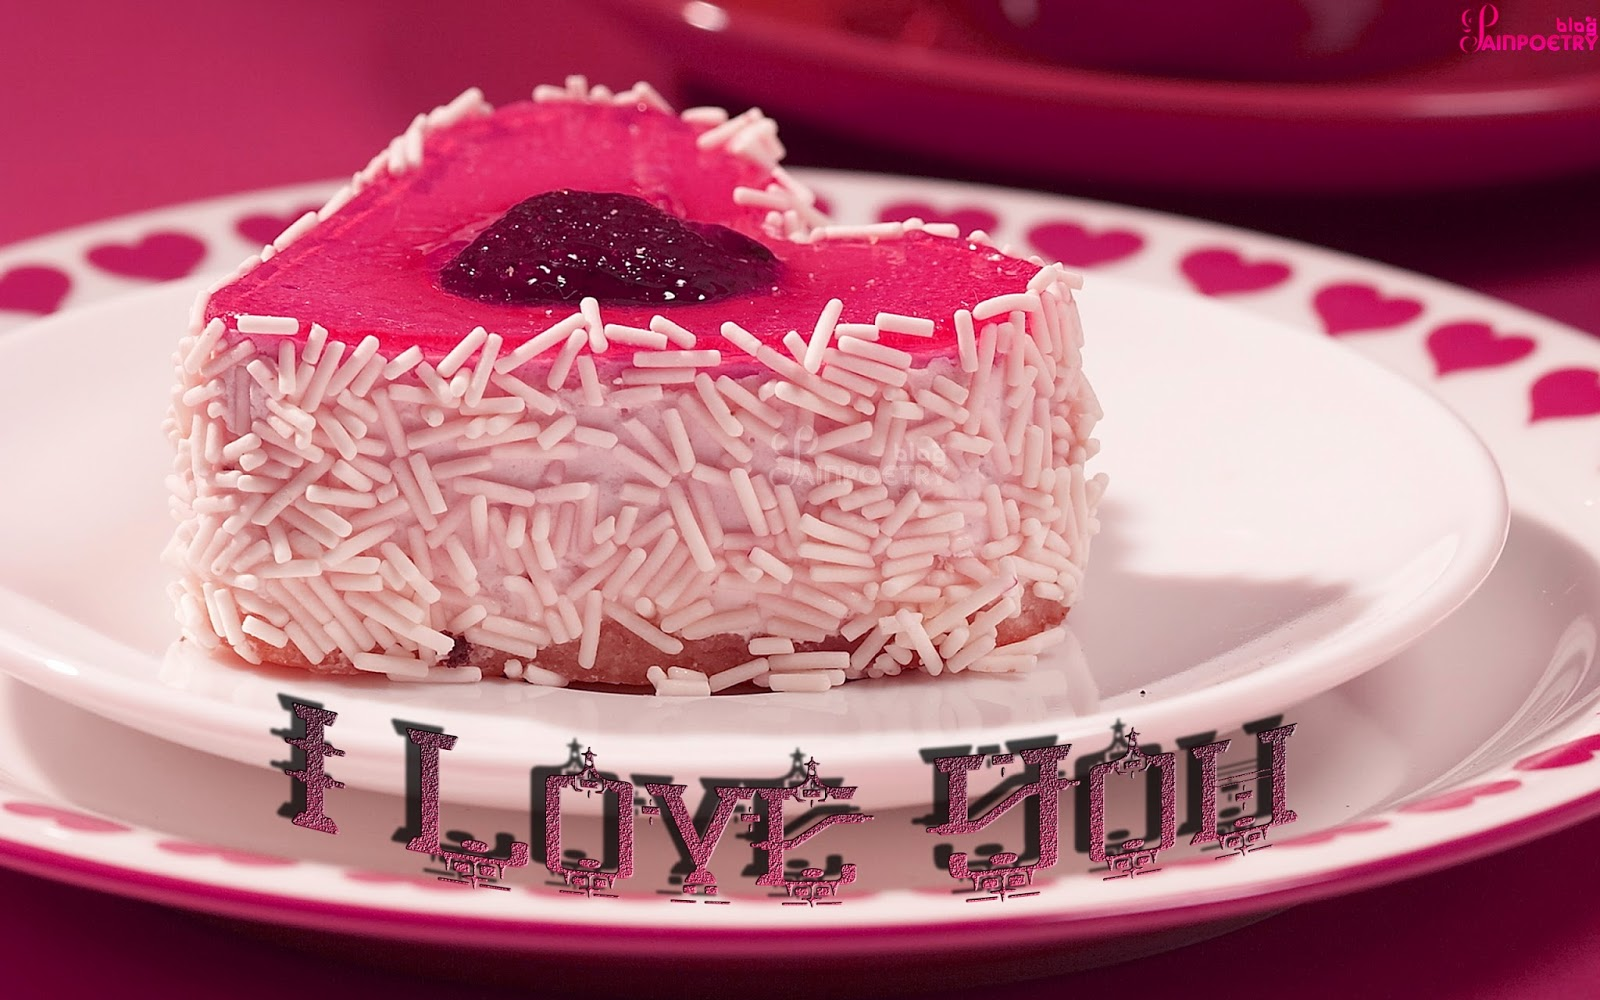 Love-Wallpaper-With-A-Cake-Heart-Shaped-Image-HD